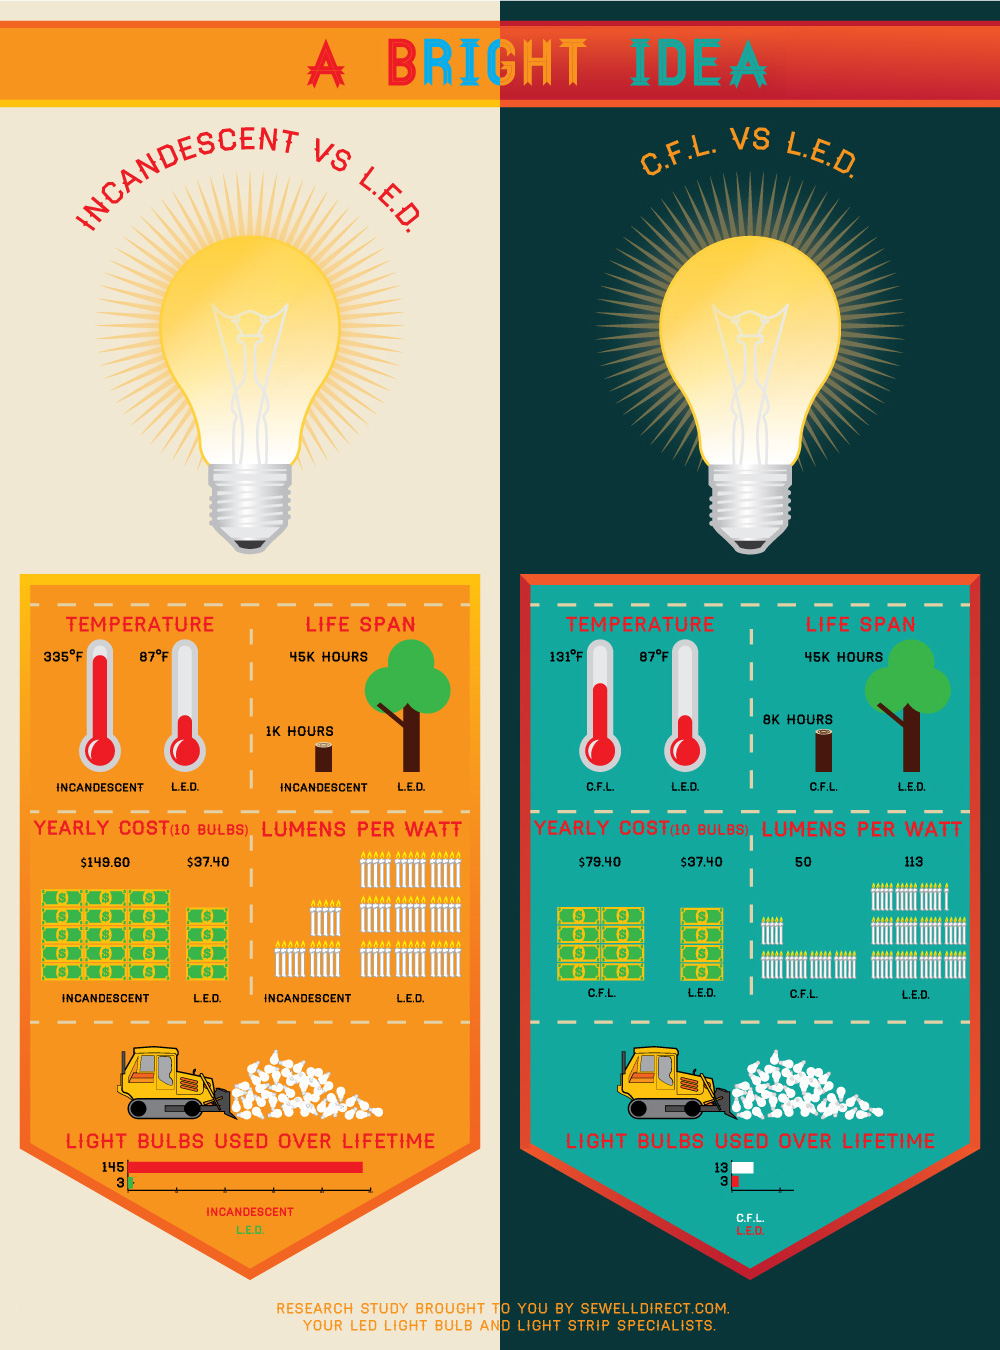 LED vs Traditional light bulb